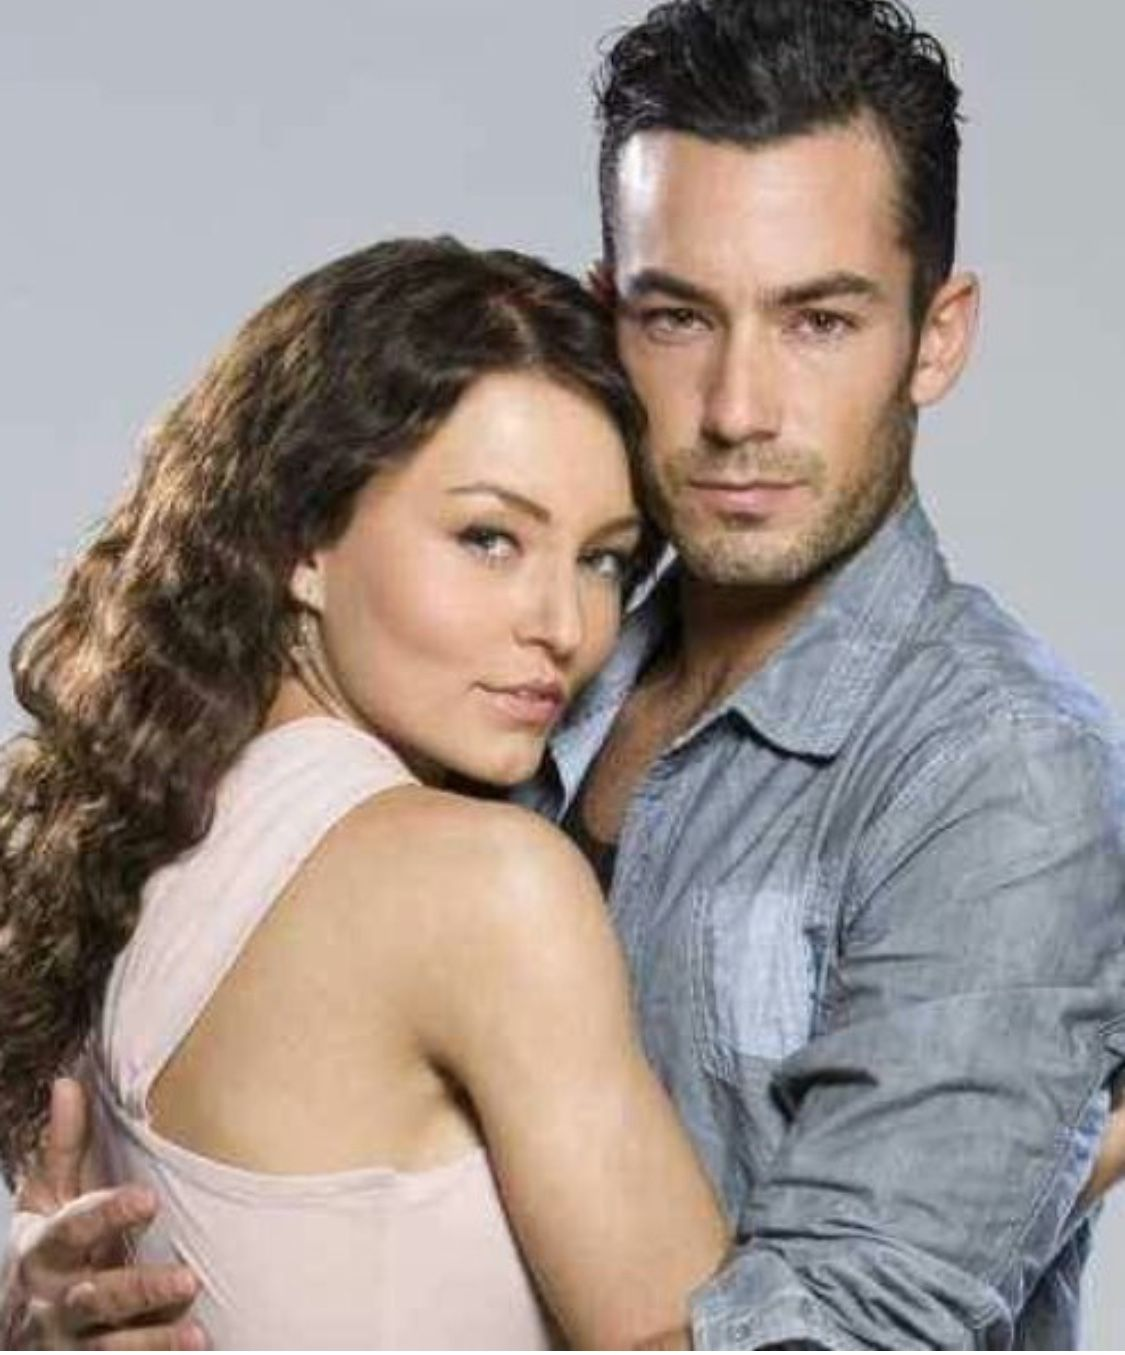 Angelique Boyer Movies And Tv Shows aaron diaz & angelique boyer teresa | aaron diaz, actresses